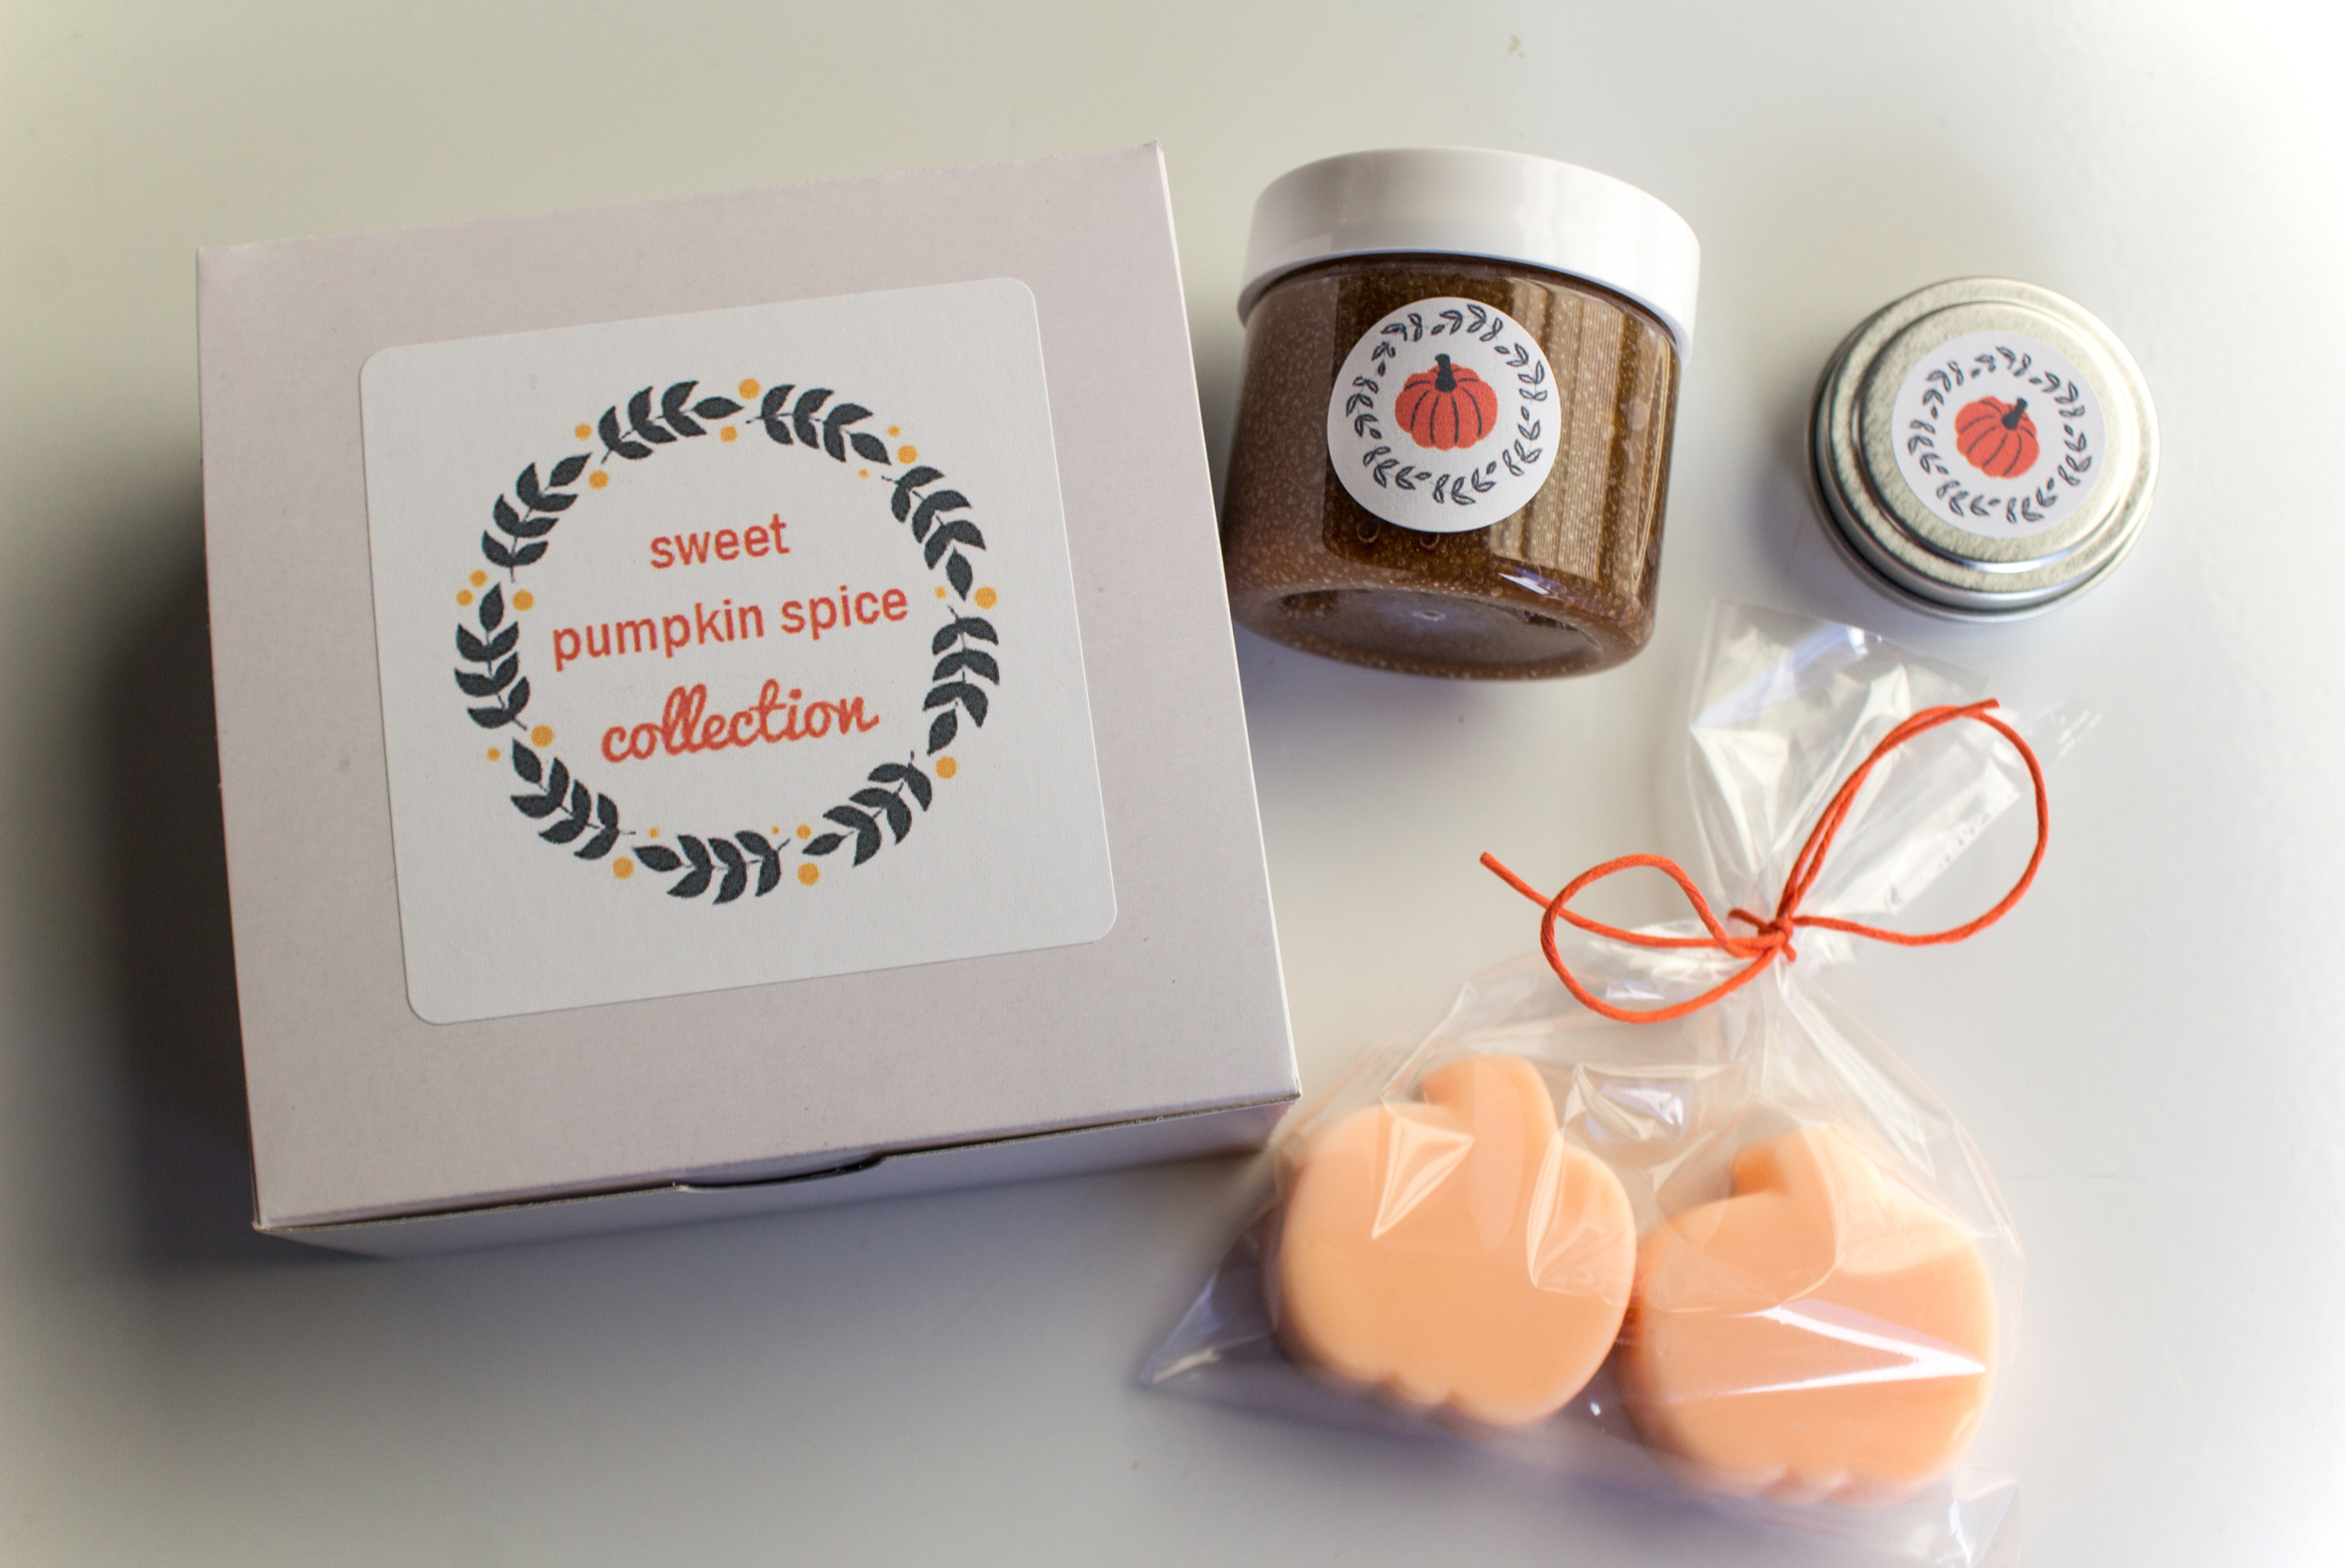 Happee Body. bath and body, holiday gift idea, holiday gift guide, small business, etsy, pumpkin spice, pumpkin soap, pumpkin gifts, fall gift idea, soap, lip balm, lip scrub,